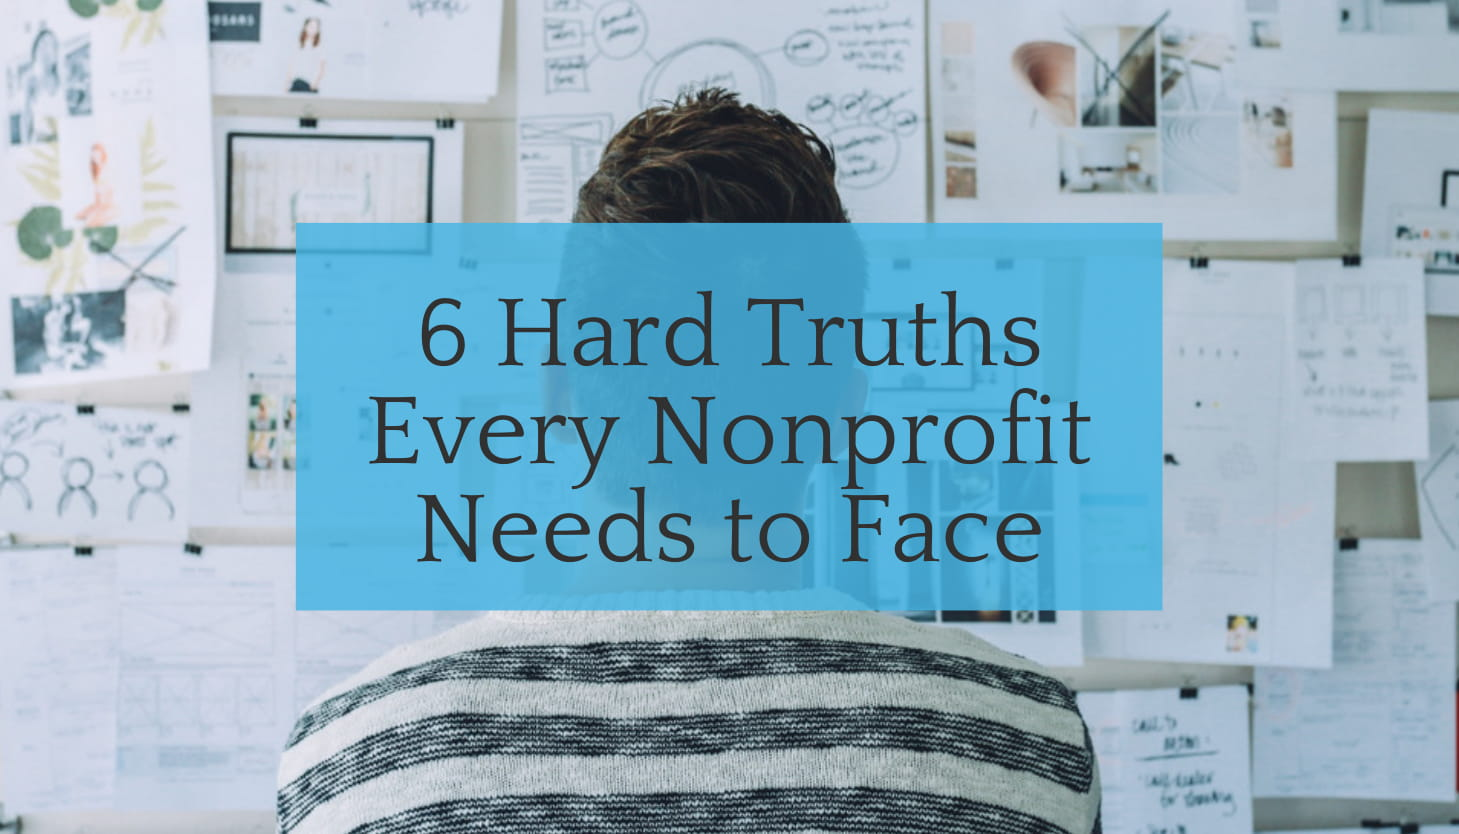 6 Hard Truths Every Nonprofit Needs to Face